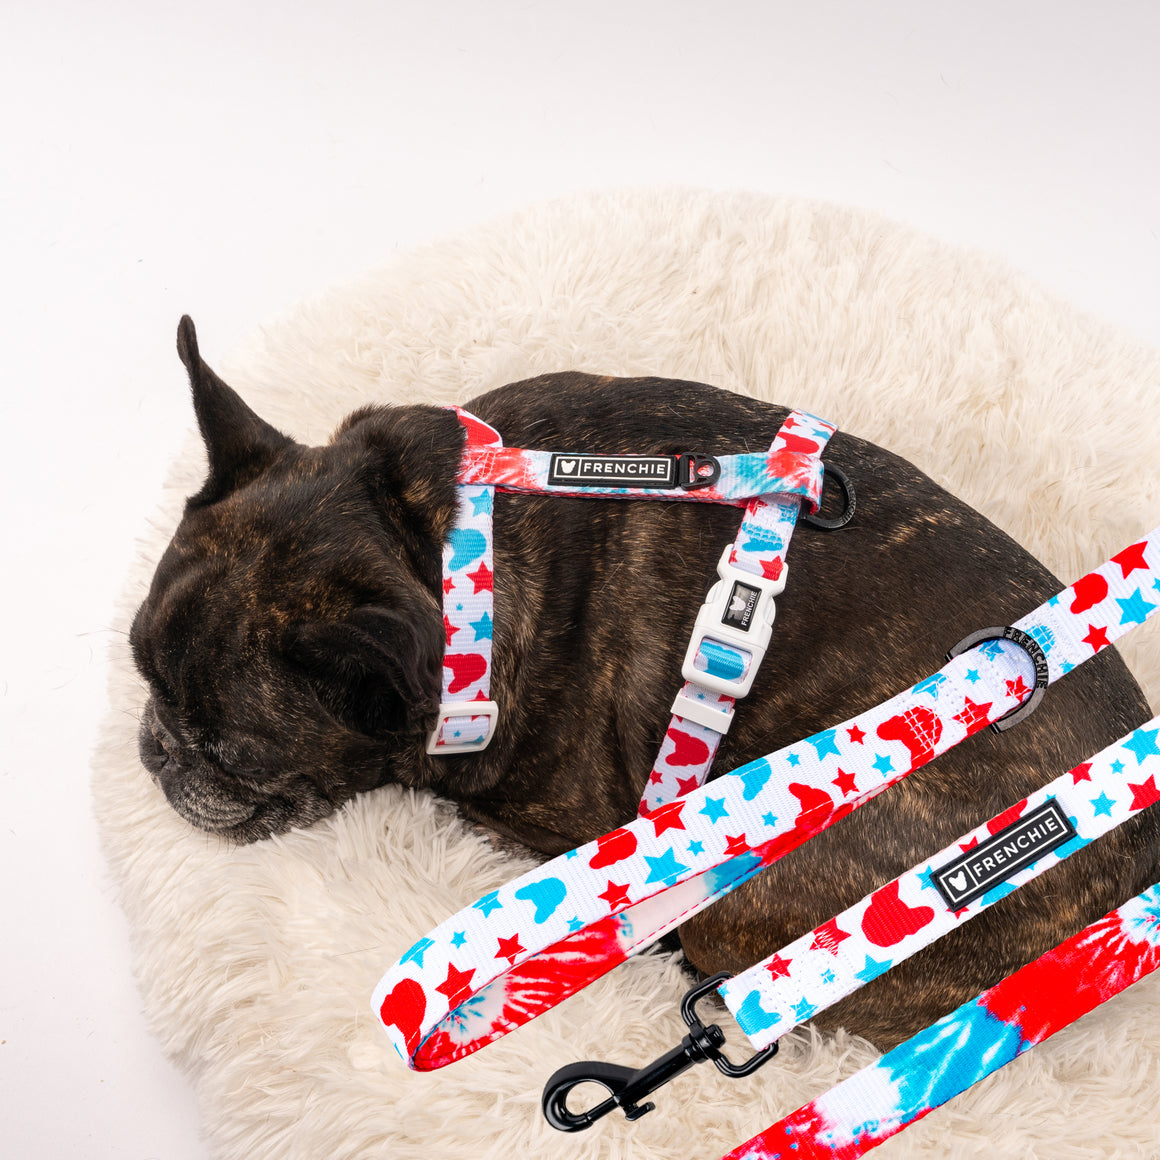 Matching Set- Frenchie Strap Harness and Comfort Leash- 4th of July Tie Dye